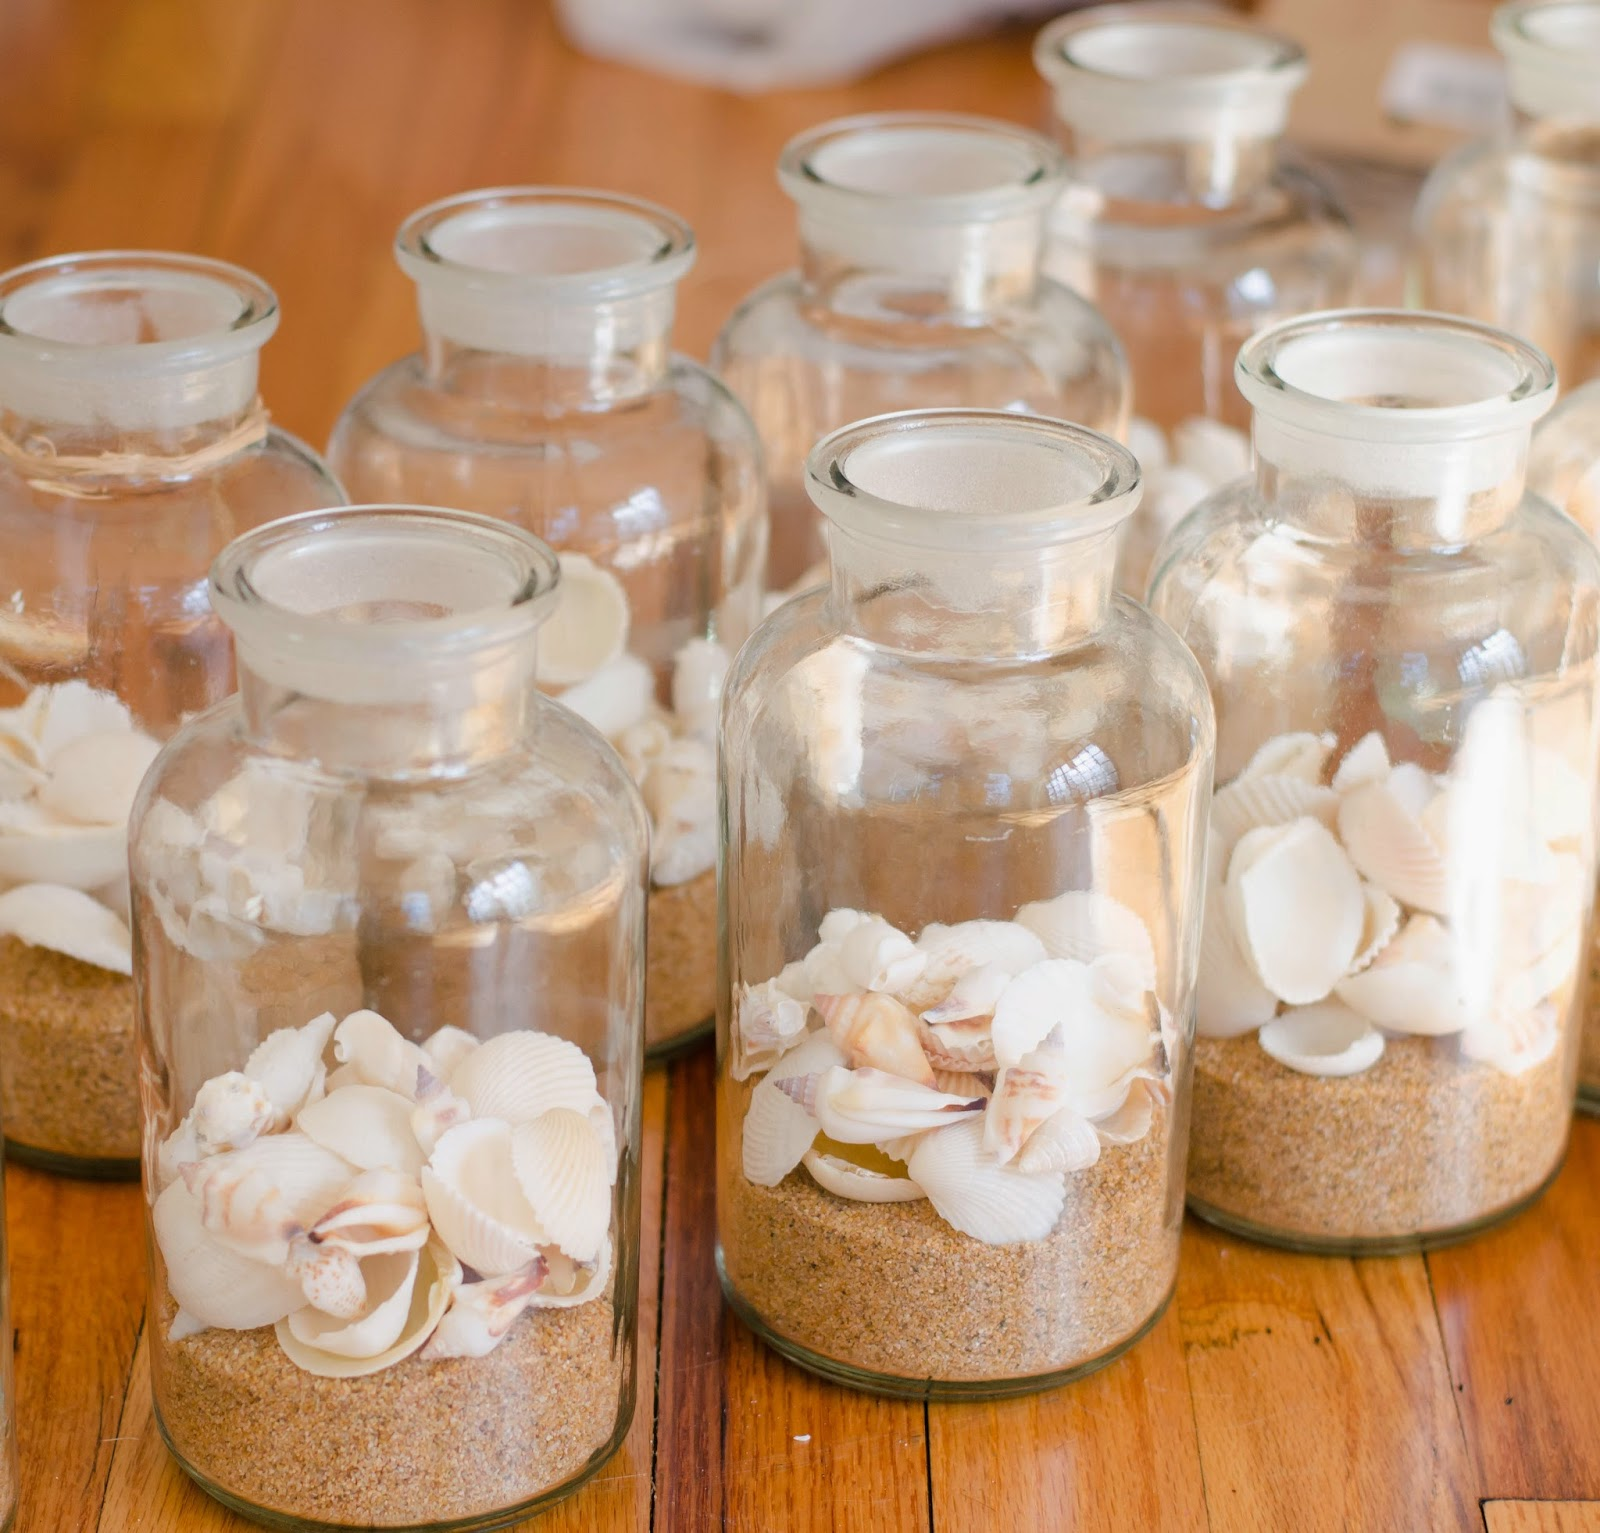 Beach Wedding Centerpieces Ideas: Laura LaRae's Luxuries: DIY Beach Wedding Centerpieces